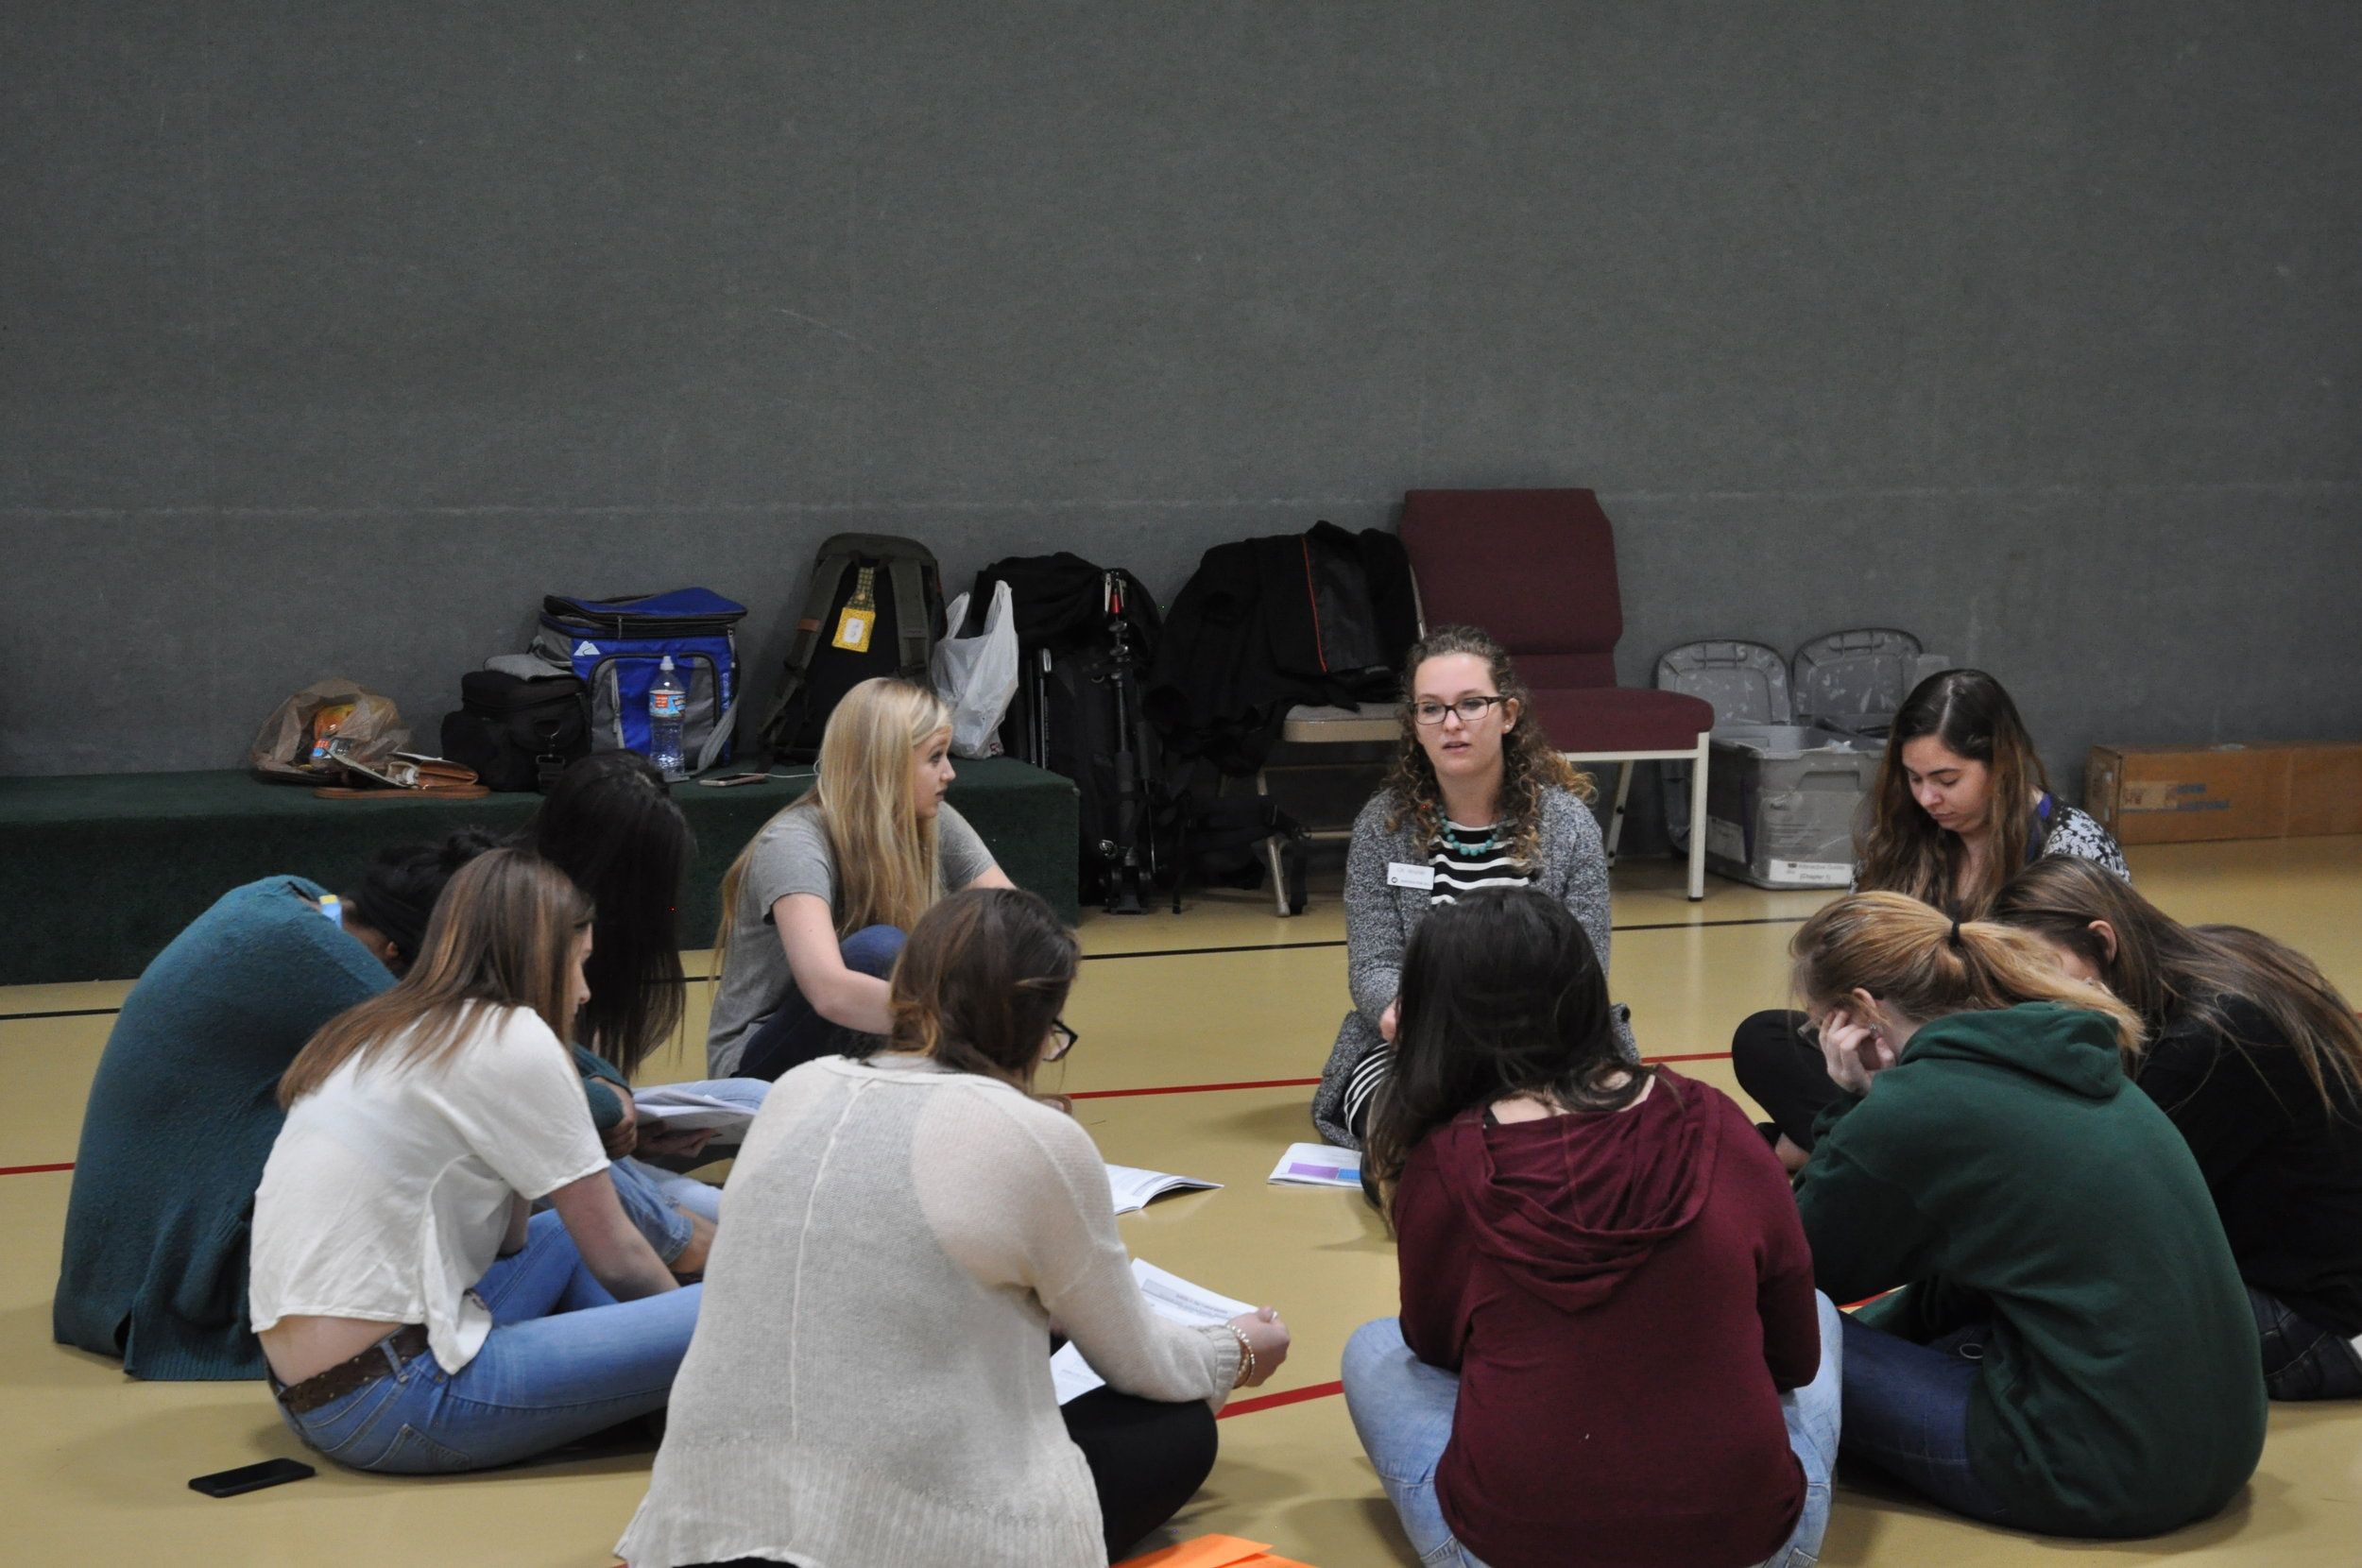 Rylei's first exposure to Justice For All was during our seminar at her high school in 2017. Here JFA trainer CK Wisner (center, curly hair) leads her mentor group in interactive exercises and discussion as Rylei (facing CK) listens.